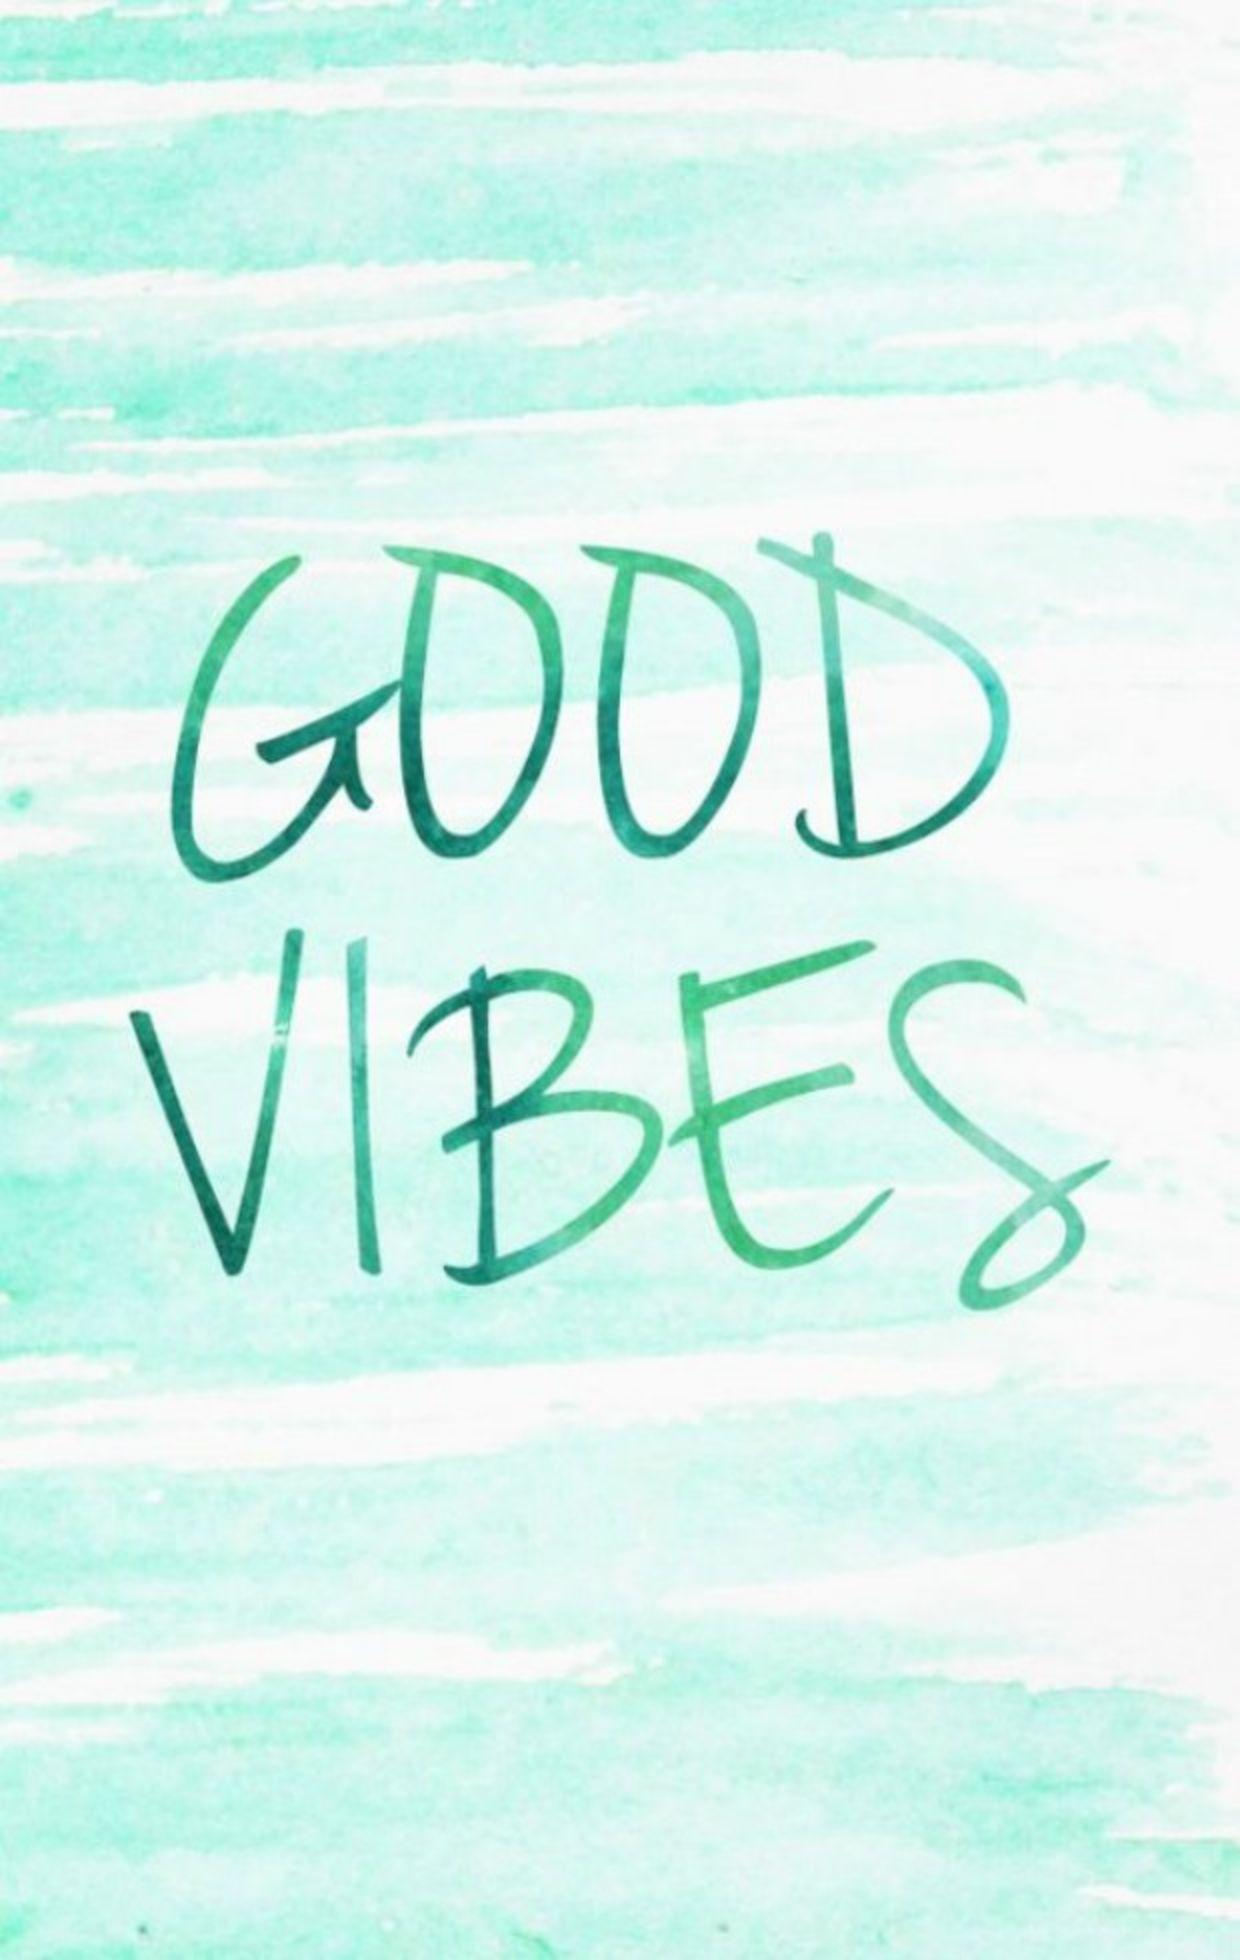 Good Vibes Only Wallpapers - Wallpaper Cave